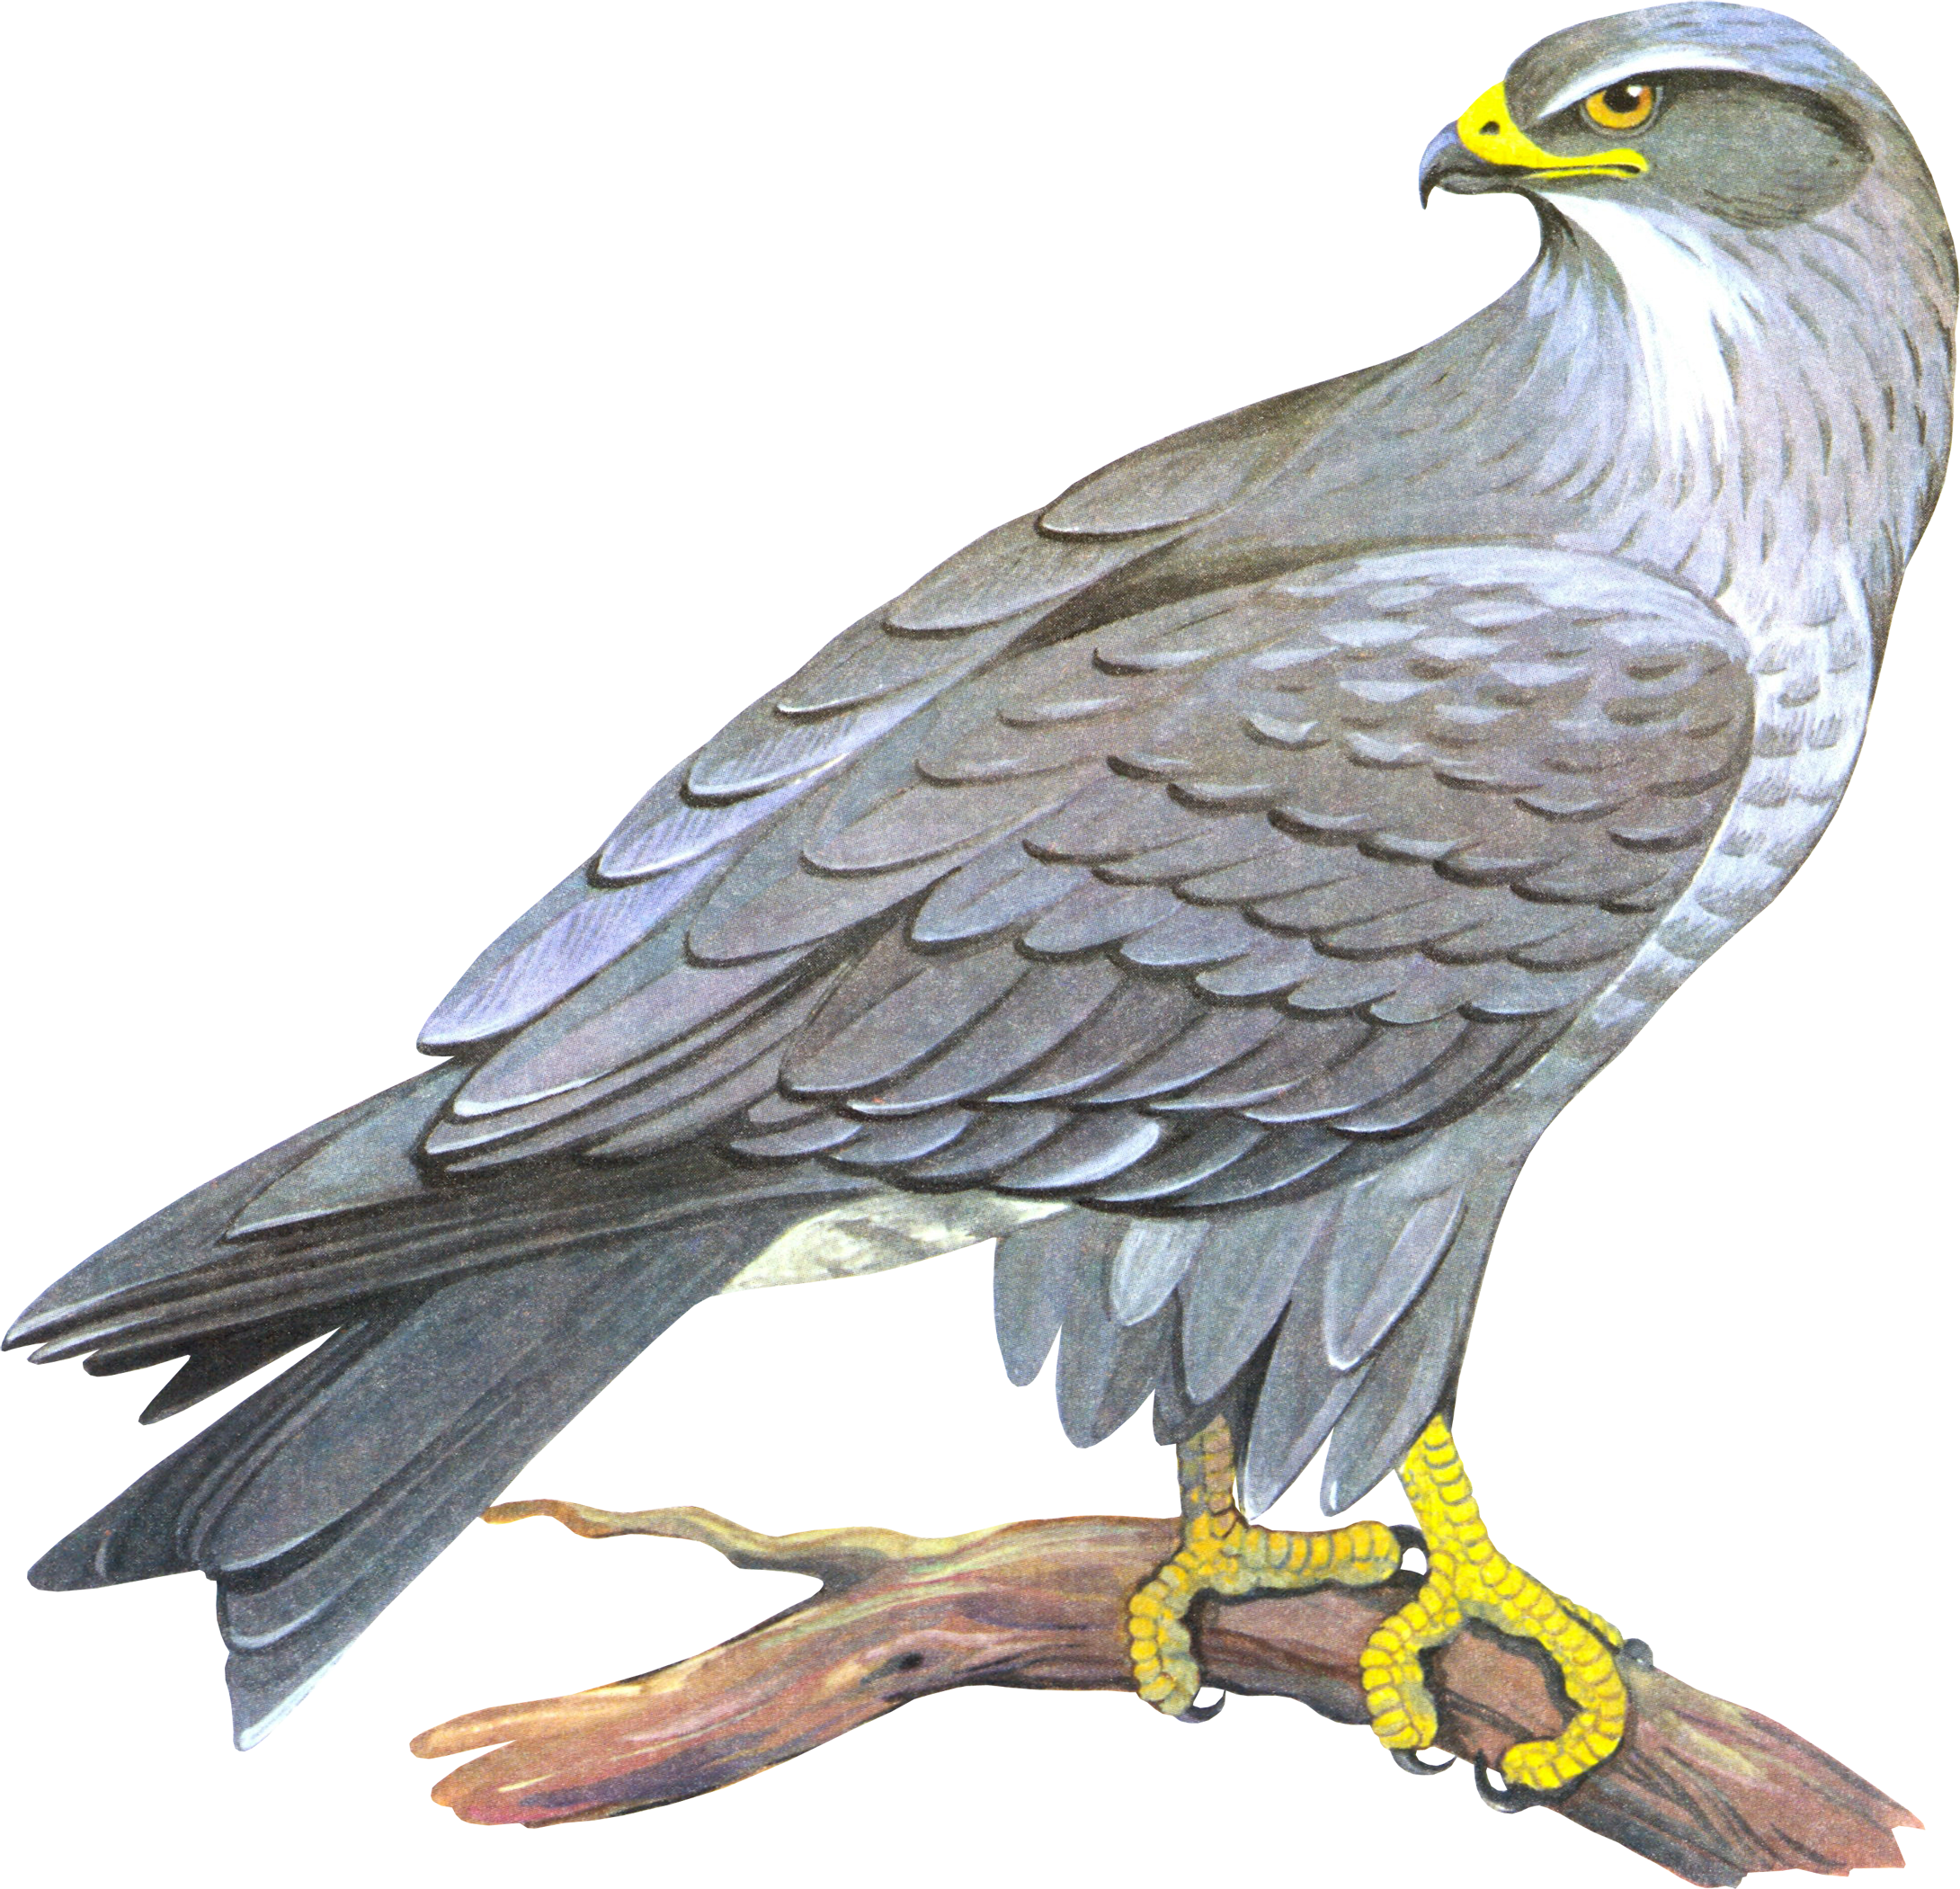 Png images free download. Falcon clipart harrier